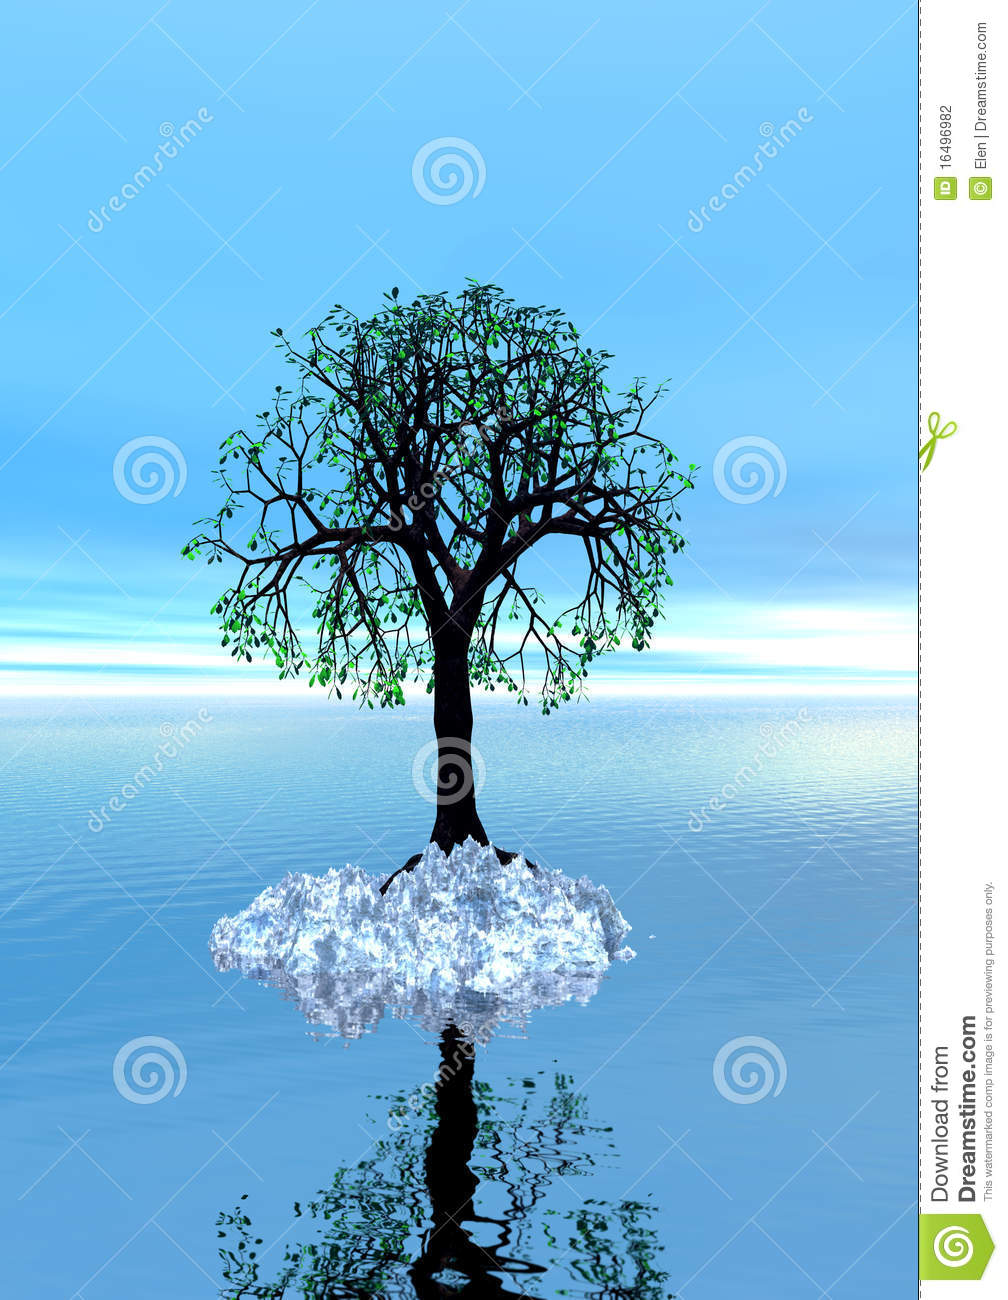 More similar stock images of 3d landscape with fall tree - 3d Landscape With Lonely Tree Spring Stock Photography